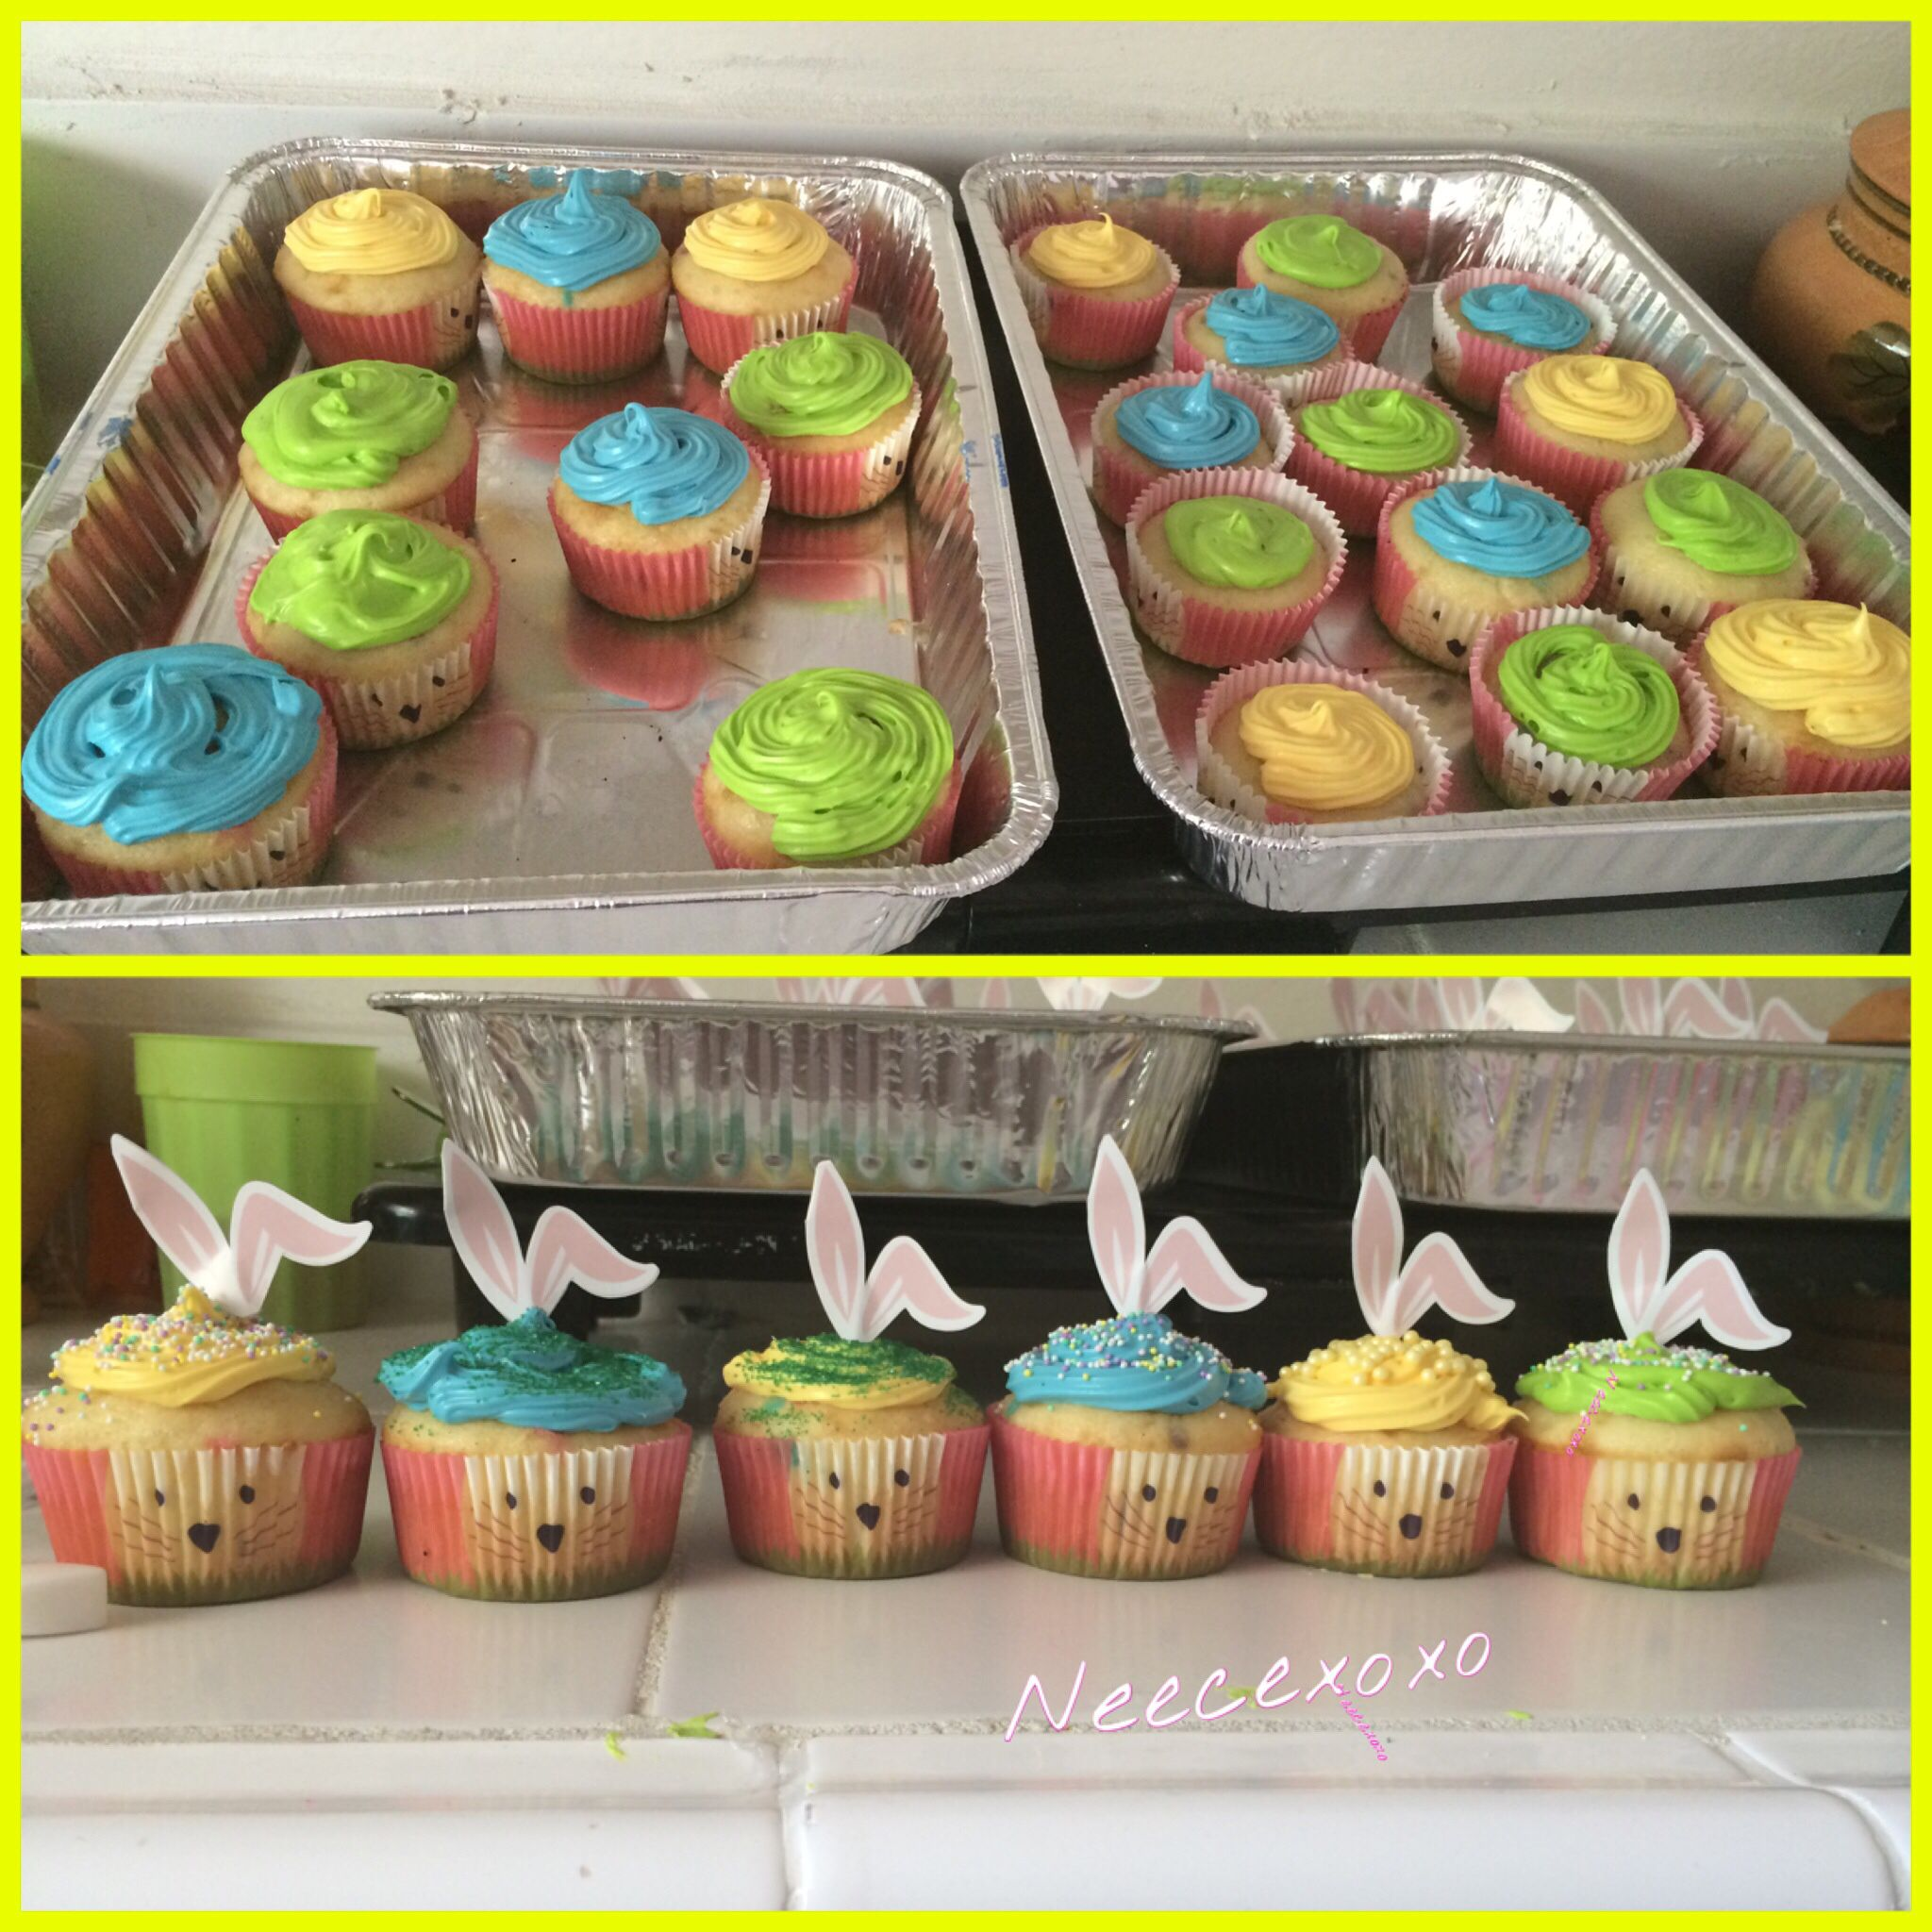 All the cupcakes and cakes that I have made